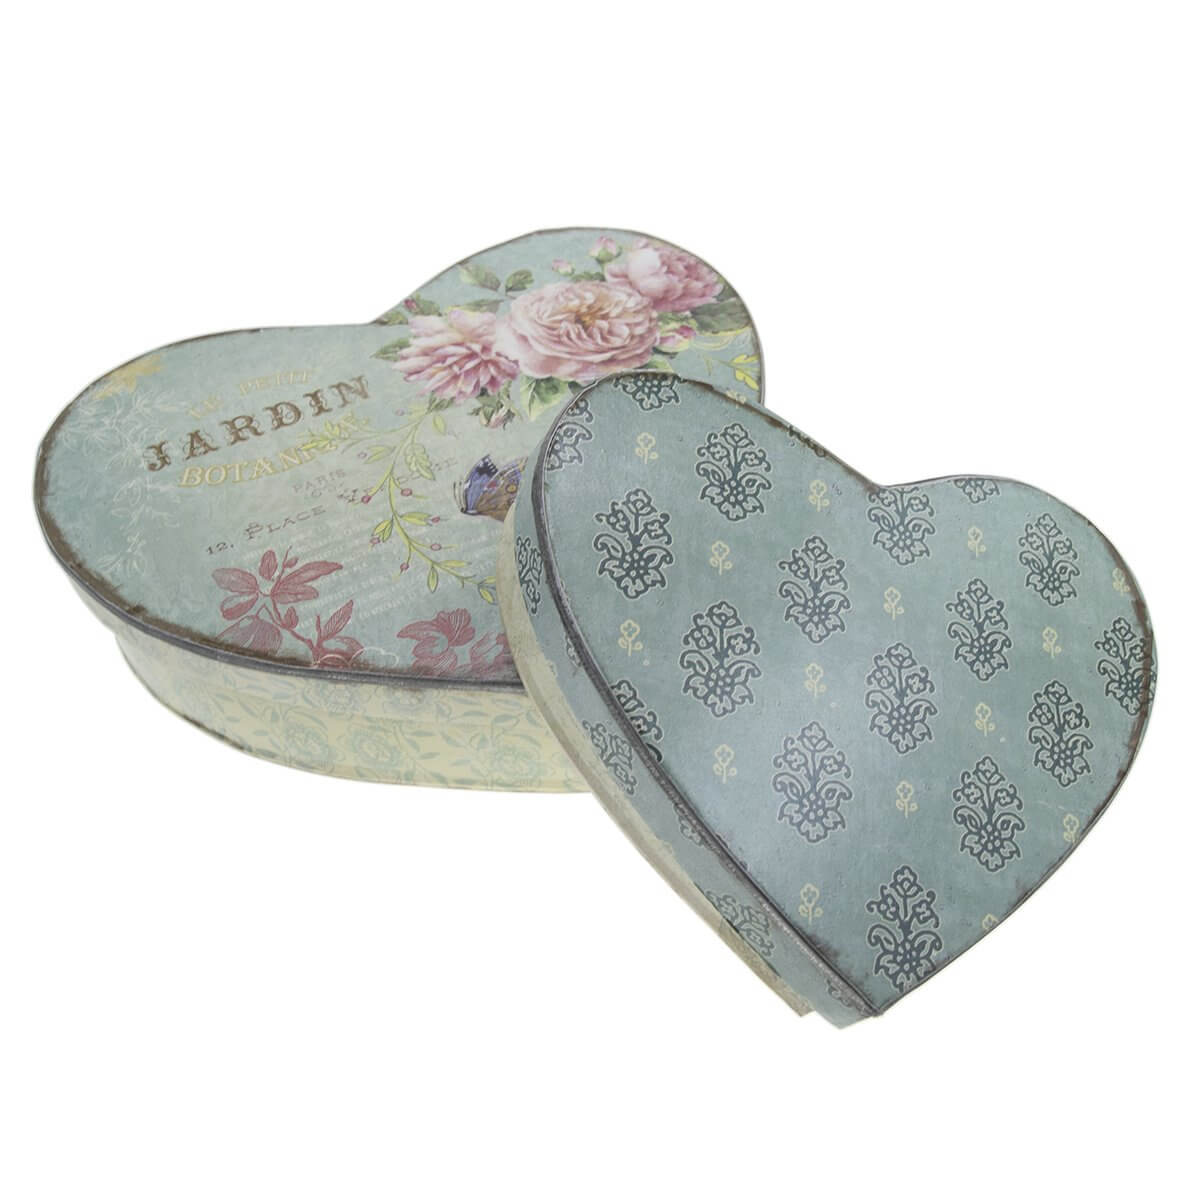 Nesting Vintage Heart Tins - Large and Small Tin